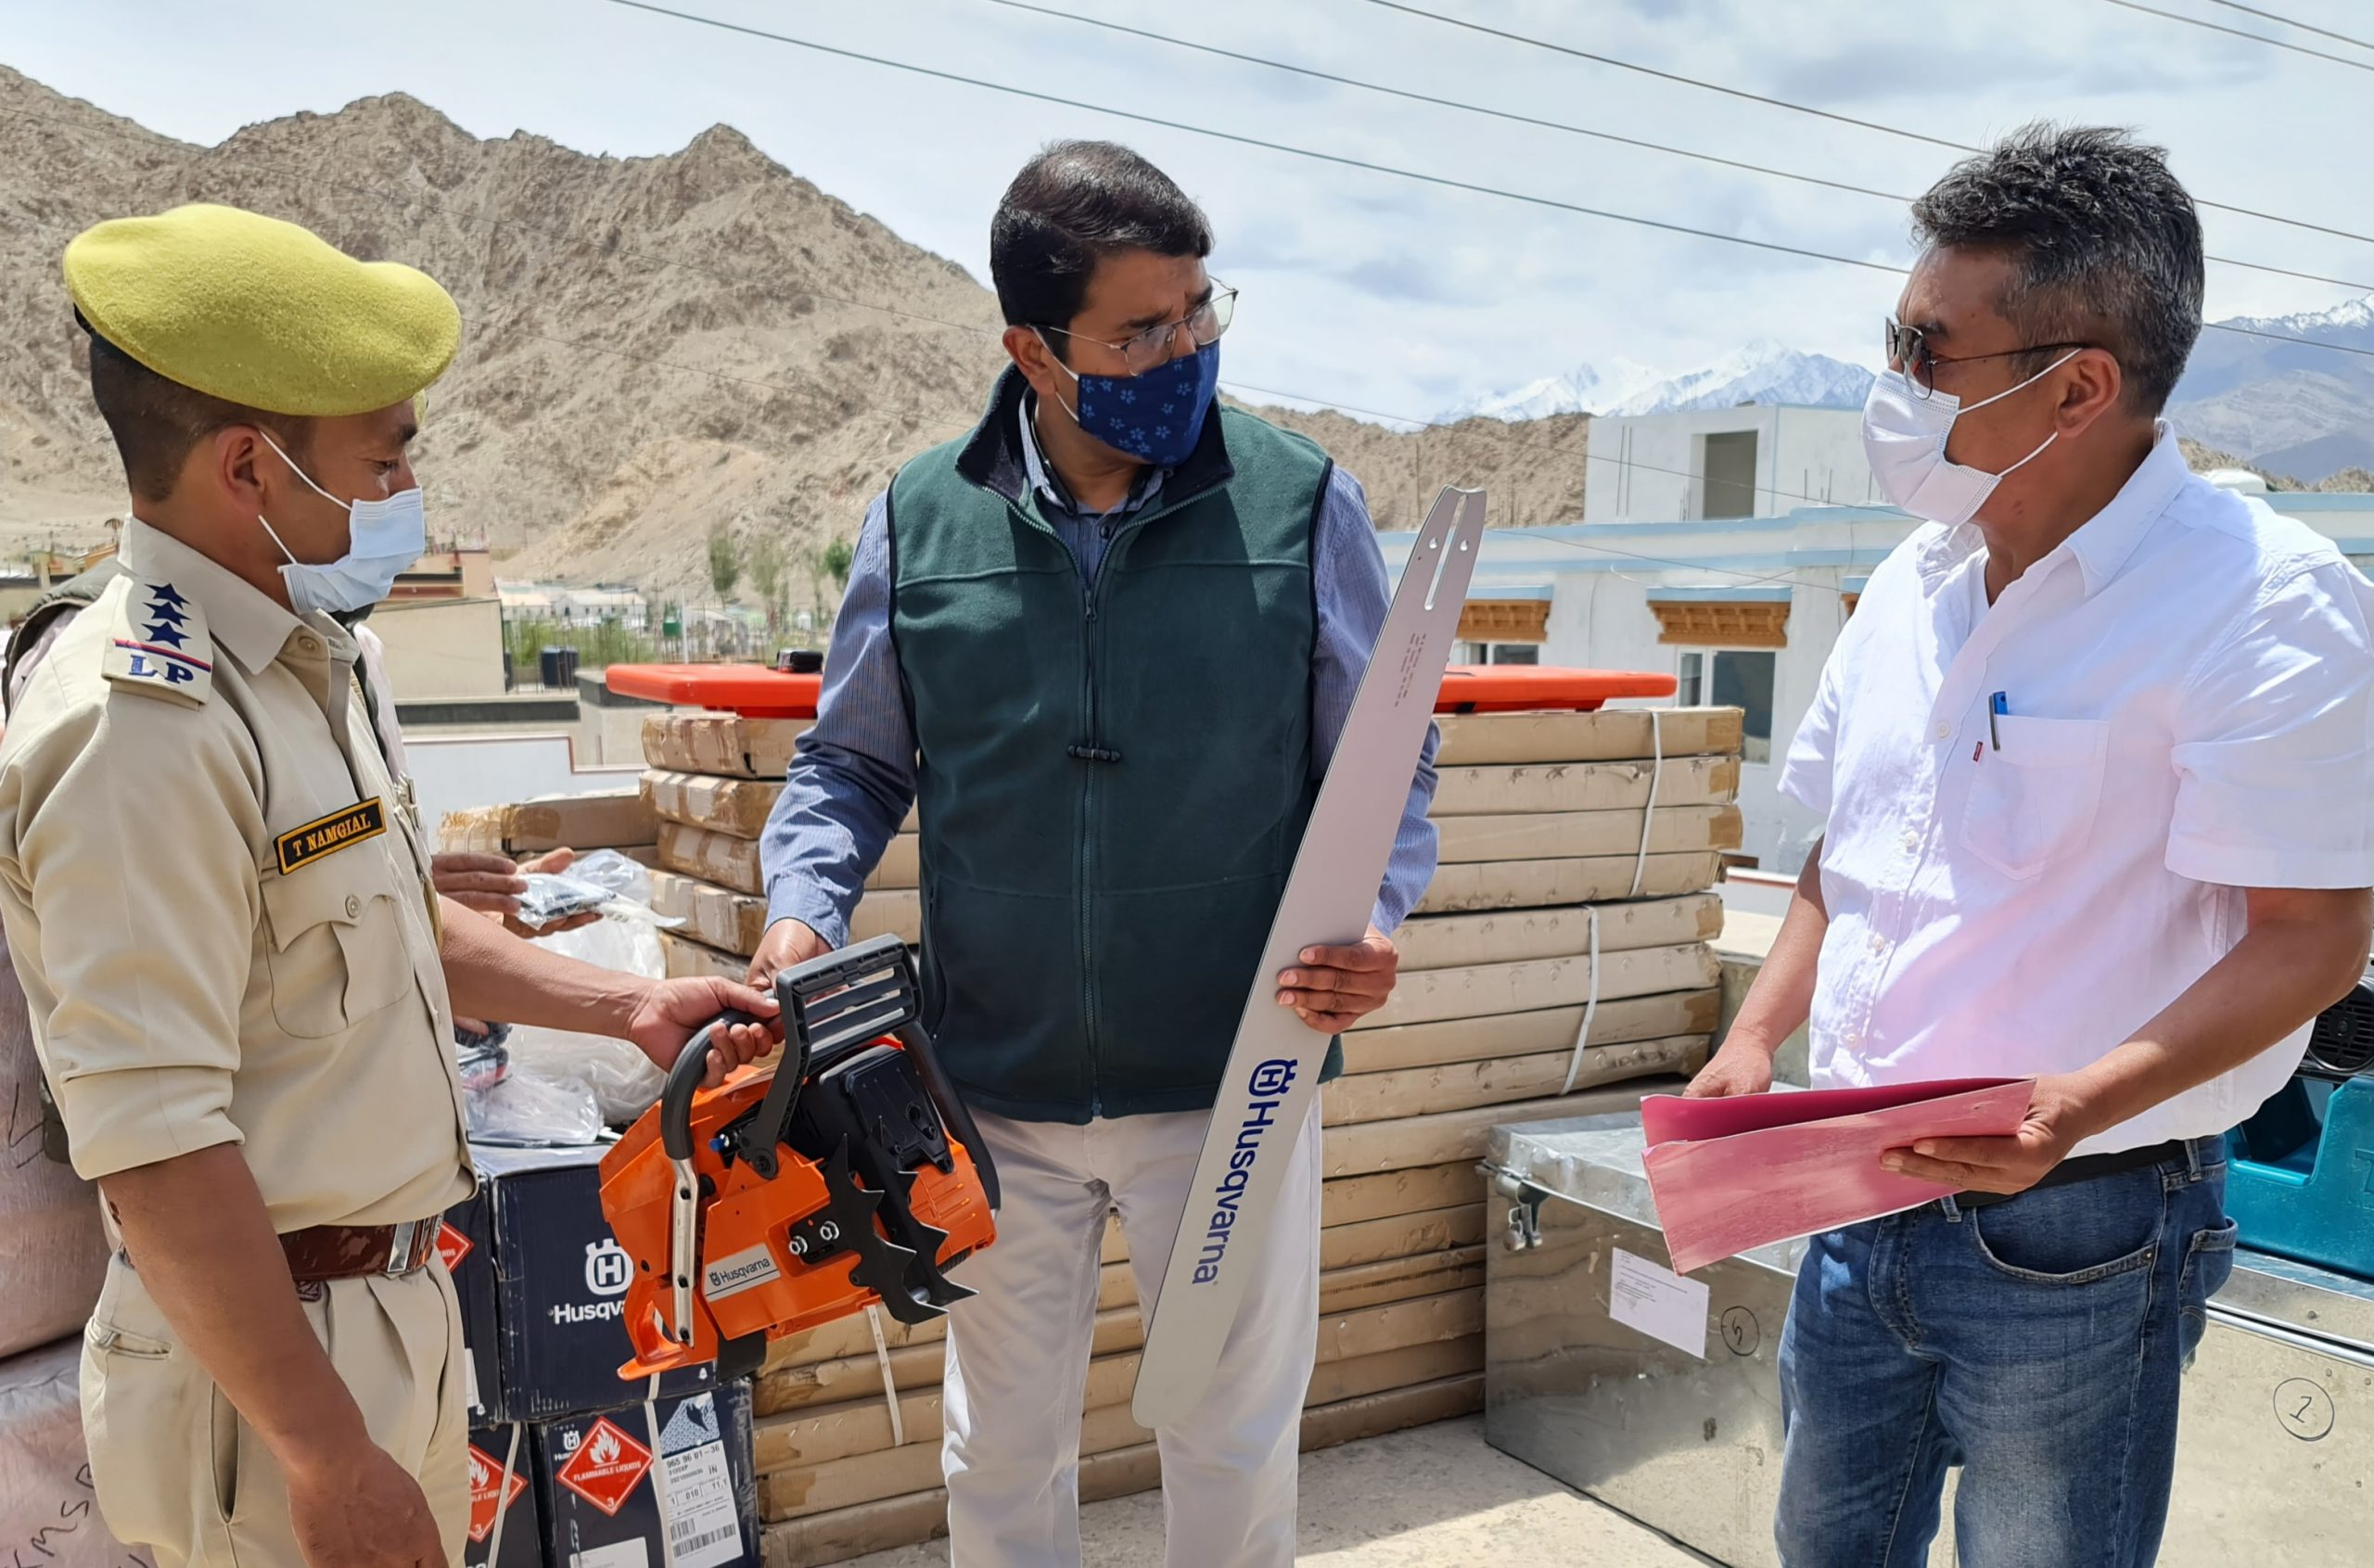 Secy Disaster Management, Ladakh inspects Search and Rescue equipment at Ladakh